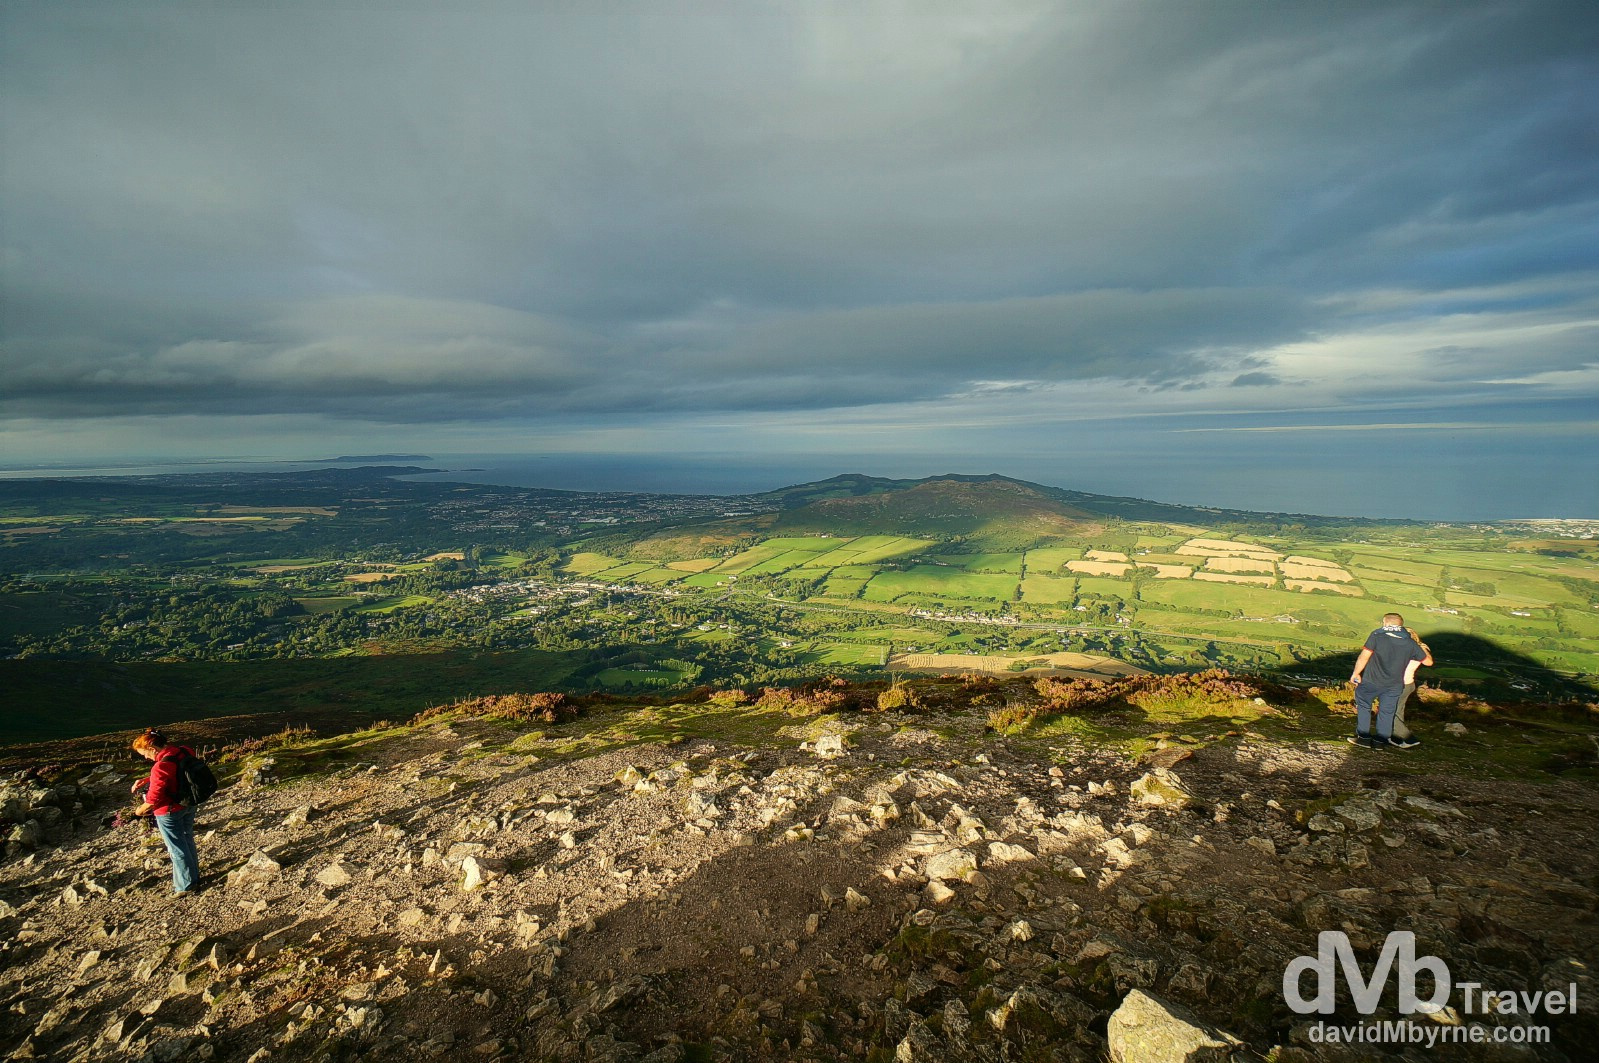 The view towards Dublin from atop the Sugar Loaf in Co. Wicklow, Ireland. August 31, 2014.